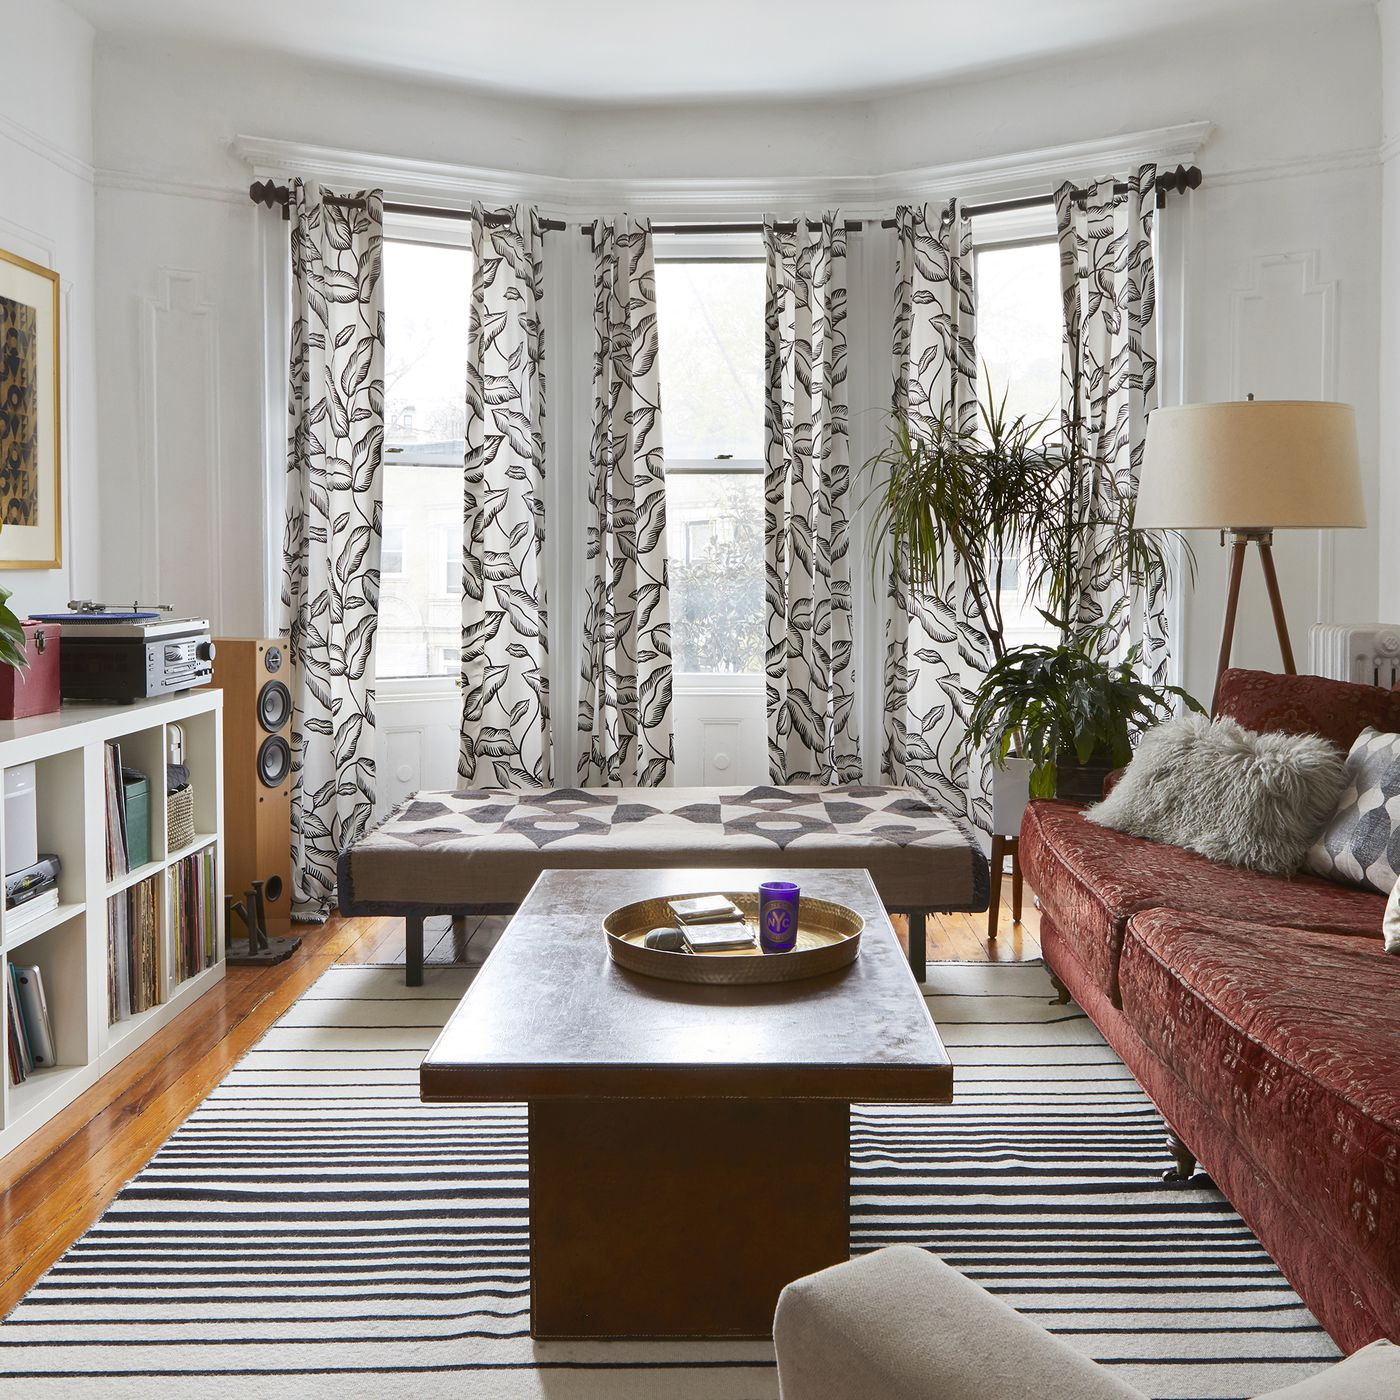 How To Upgrade Your Nyc Rental Apartment On A Budget Curbed Ny